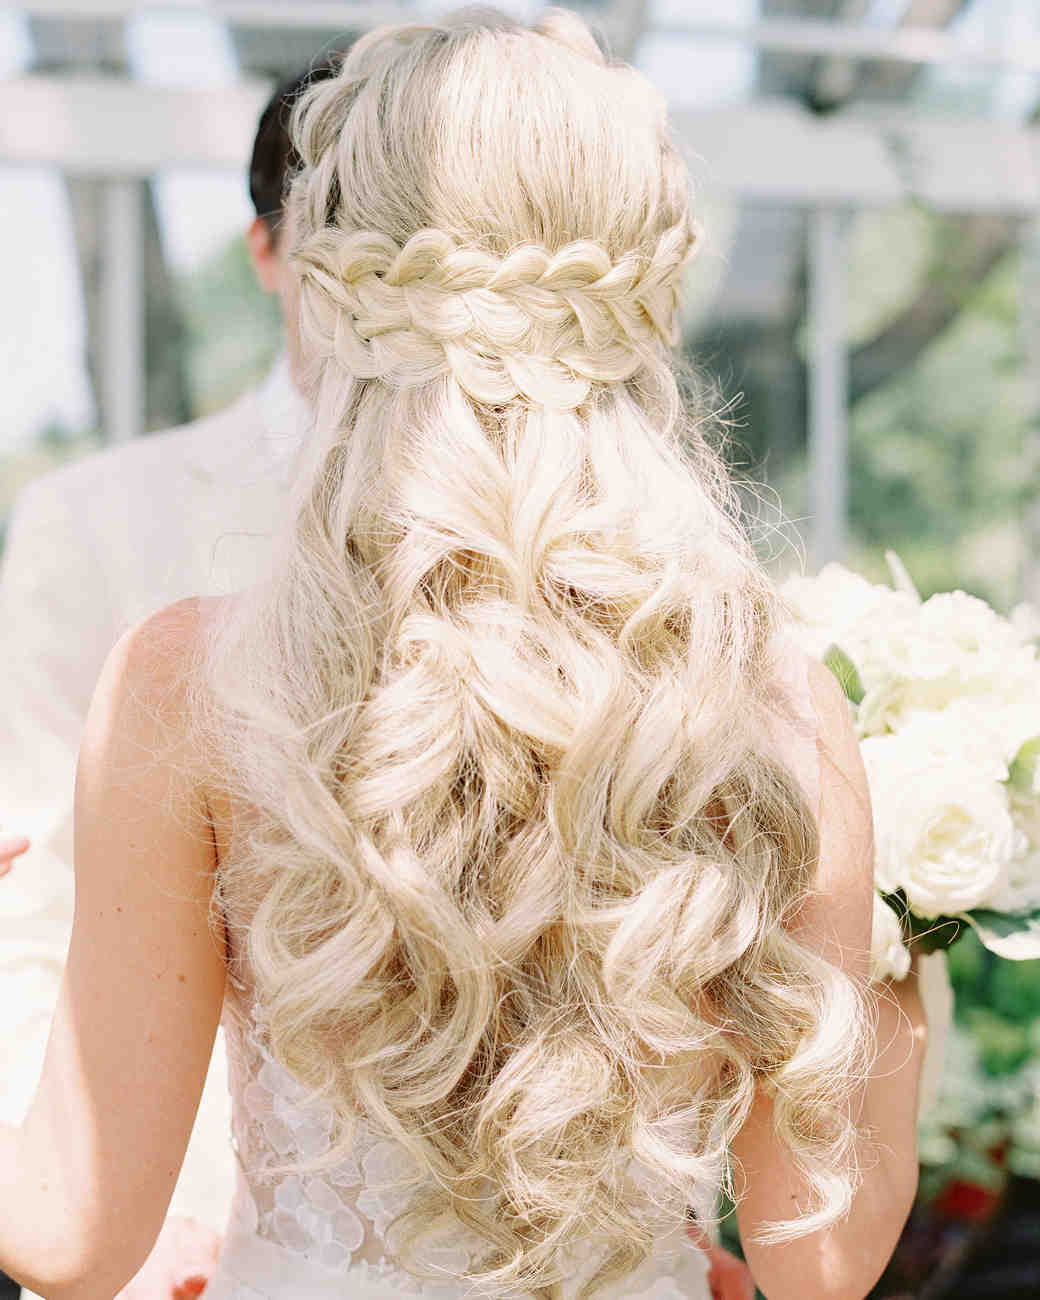 Wedding Braids For Long Hair: 28 Half-Up, Half-Down Wedding Hairstyles We Love